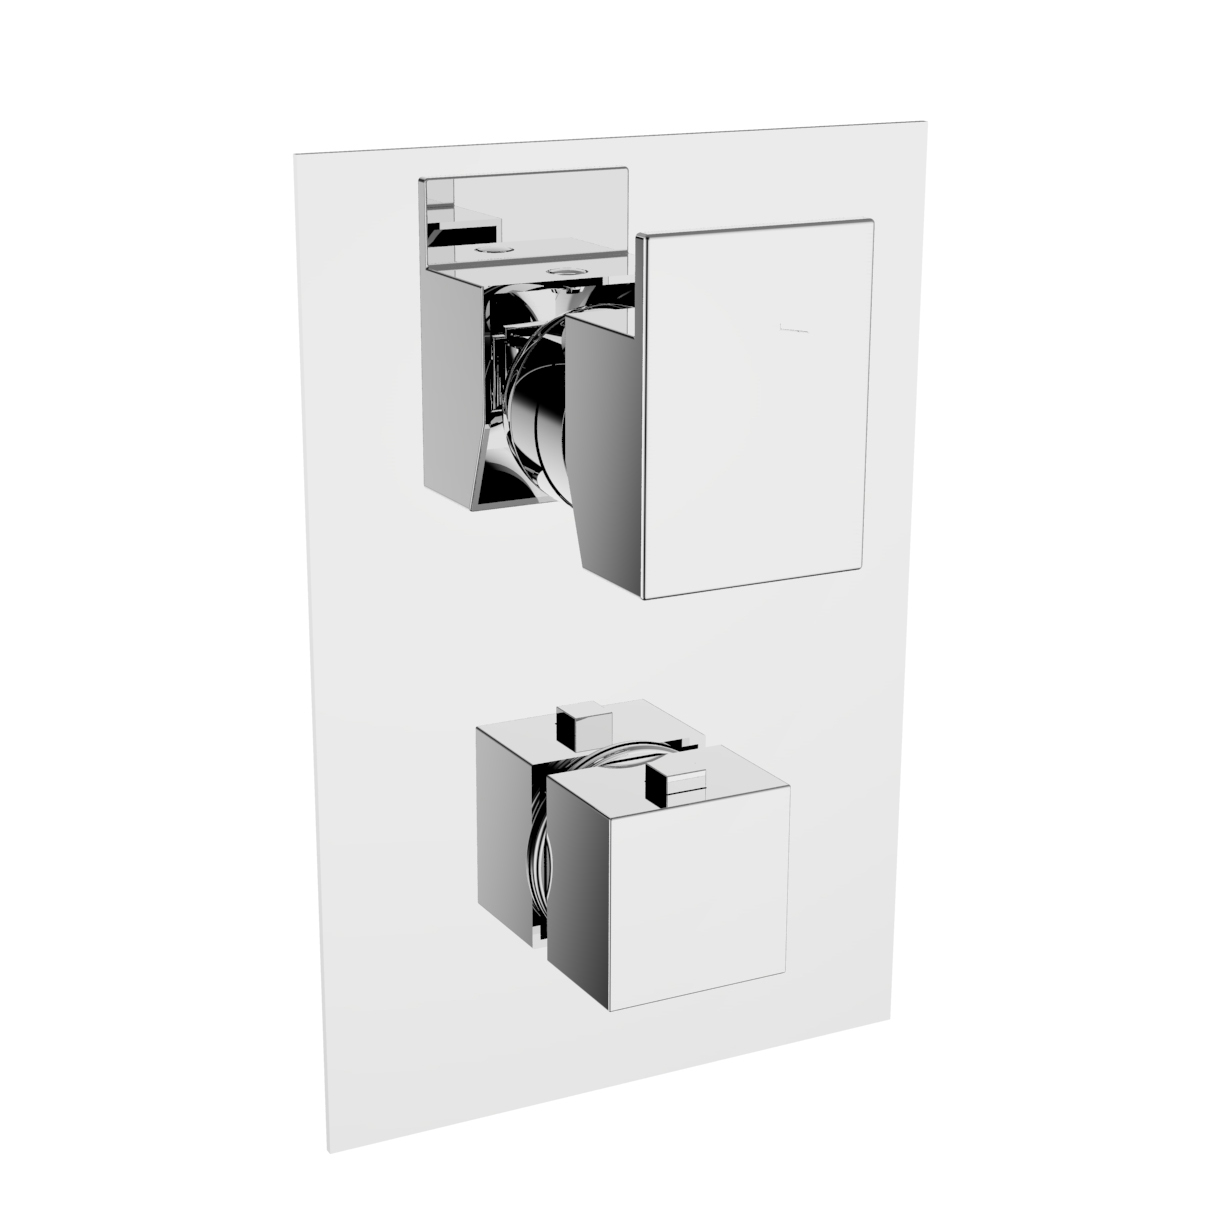 HD Image Concealed thermostatic mixer from 1 to 5 ways